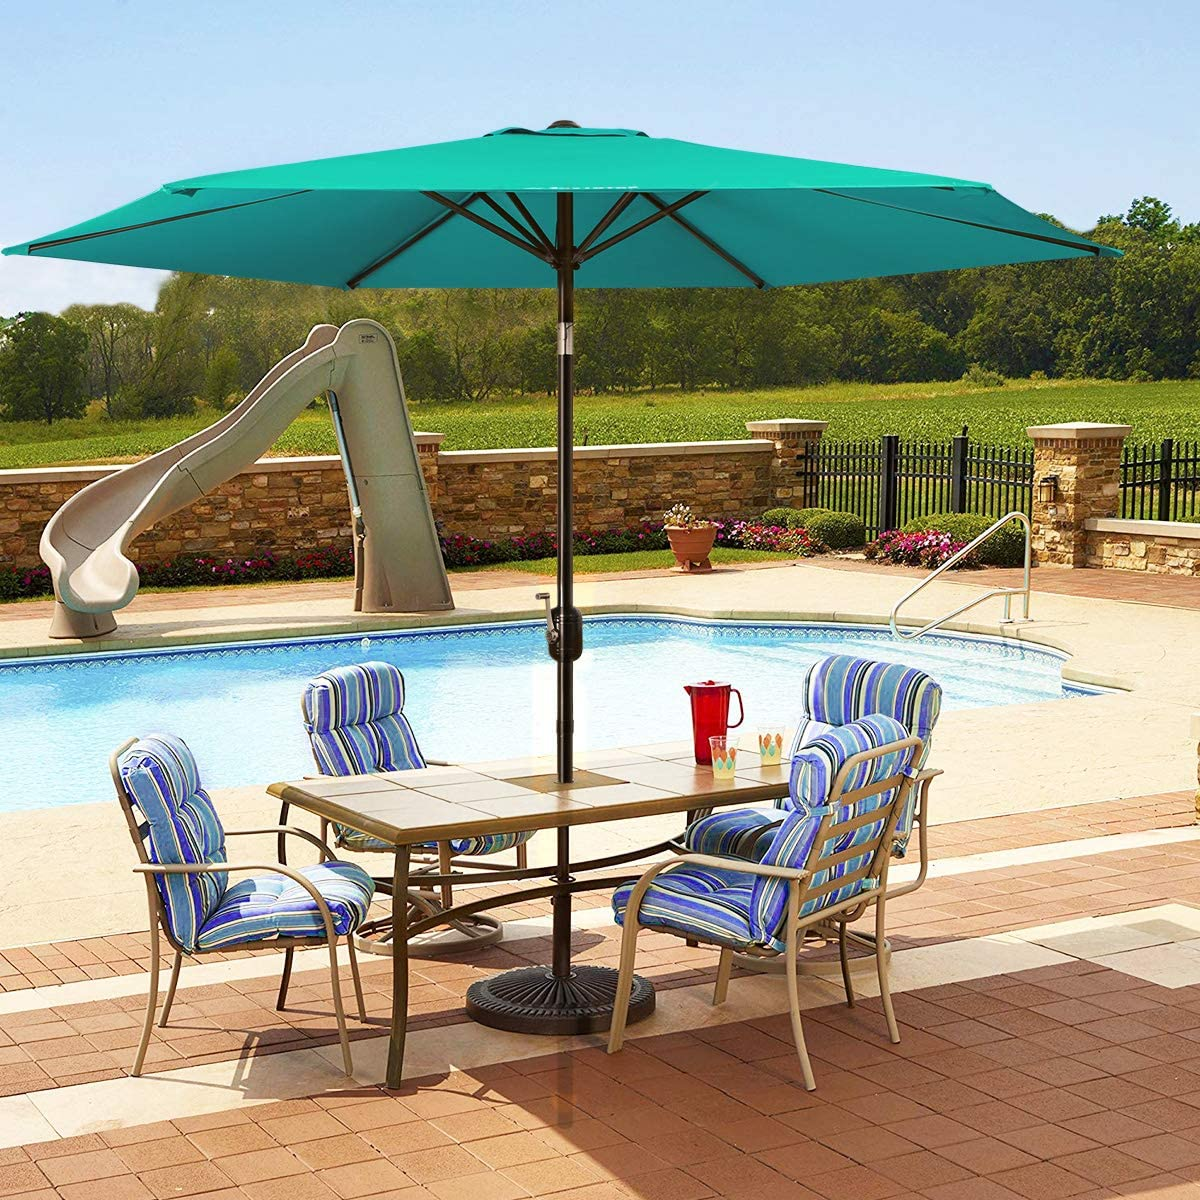 MOVTOTOP Patio Umbrella 9Ft UPF 50 Premium Outdoor Table Umbrella, Market Umbrella with Push Button Tilt and Crank for Garden, Deck, Backyard, Pool Green